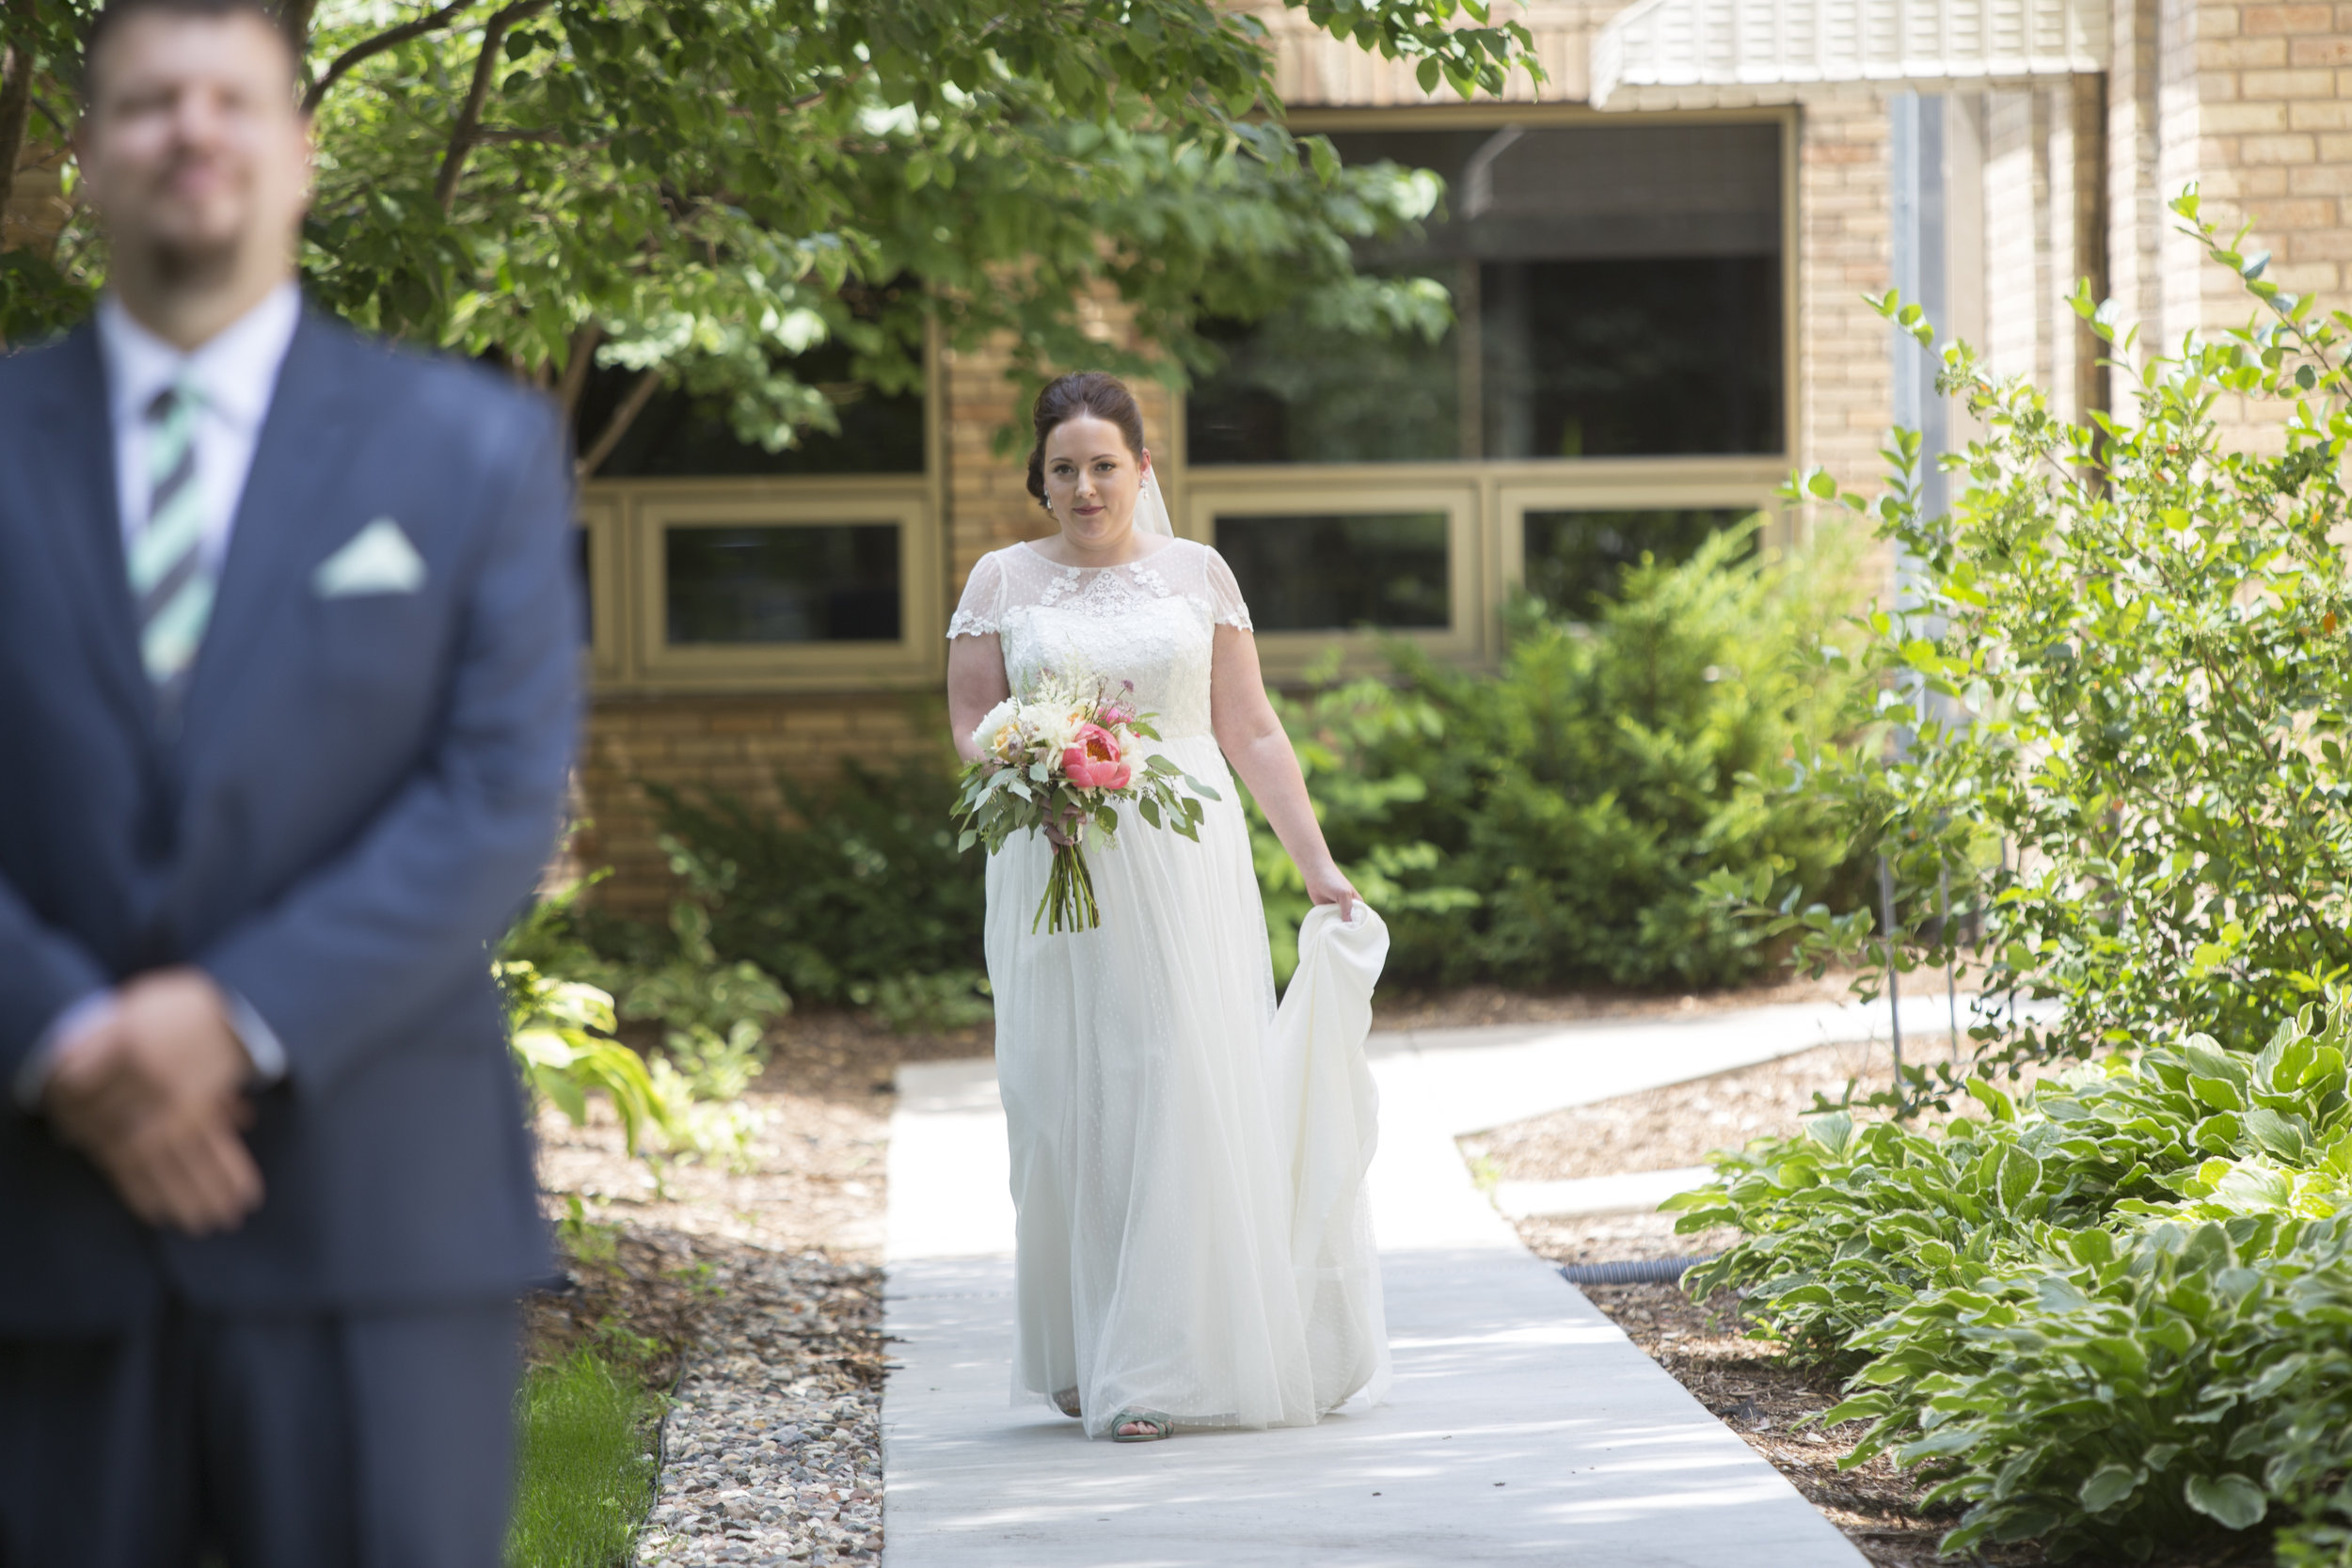 Church Wedding Photographer Ben Berndt14.jpg